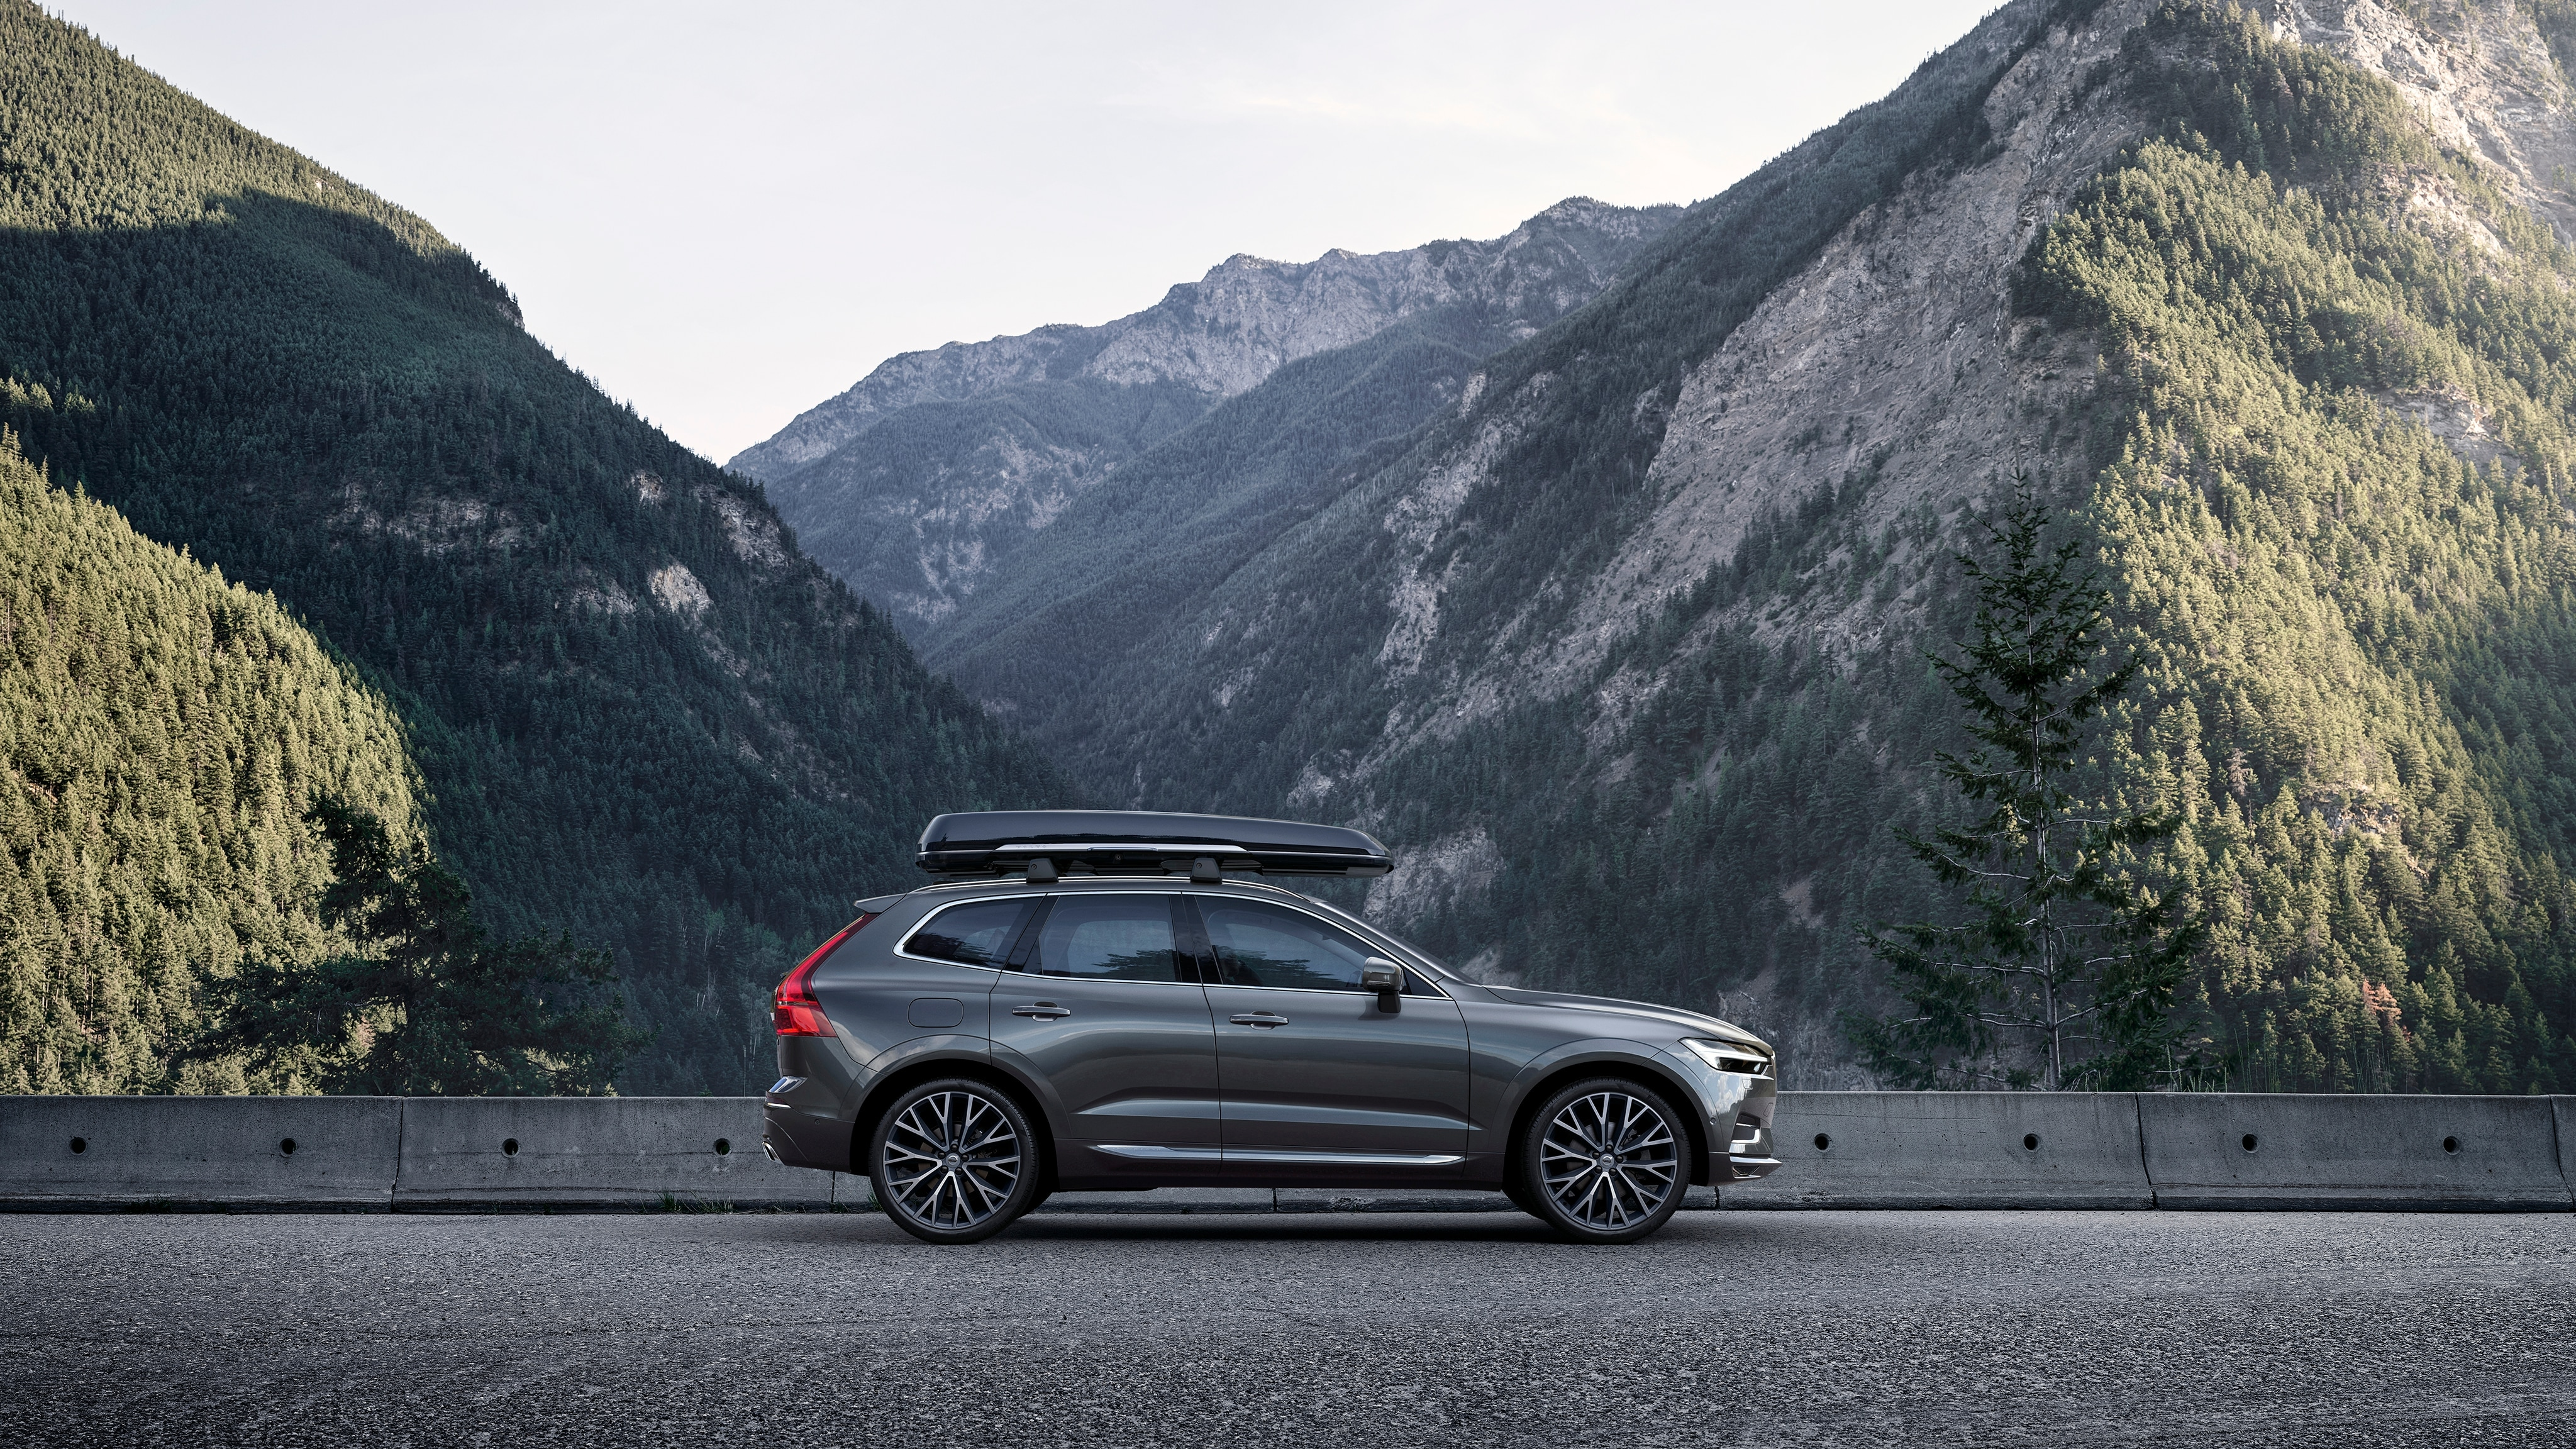 XC60 with roof mounted cargo box parked on mountain road